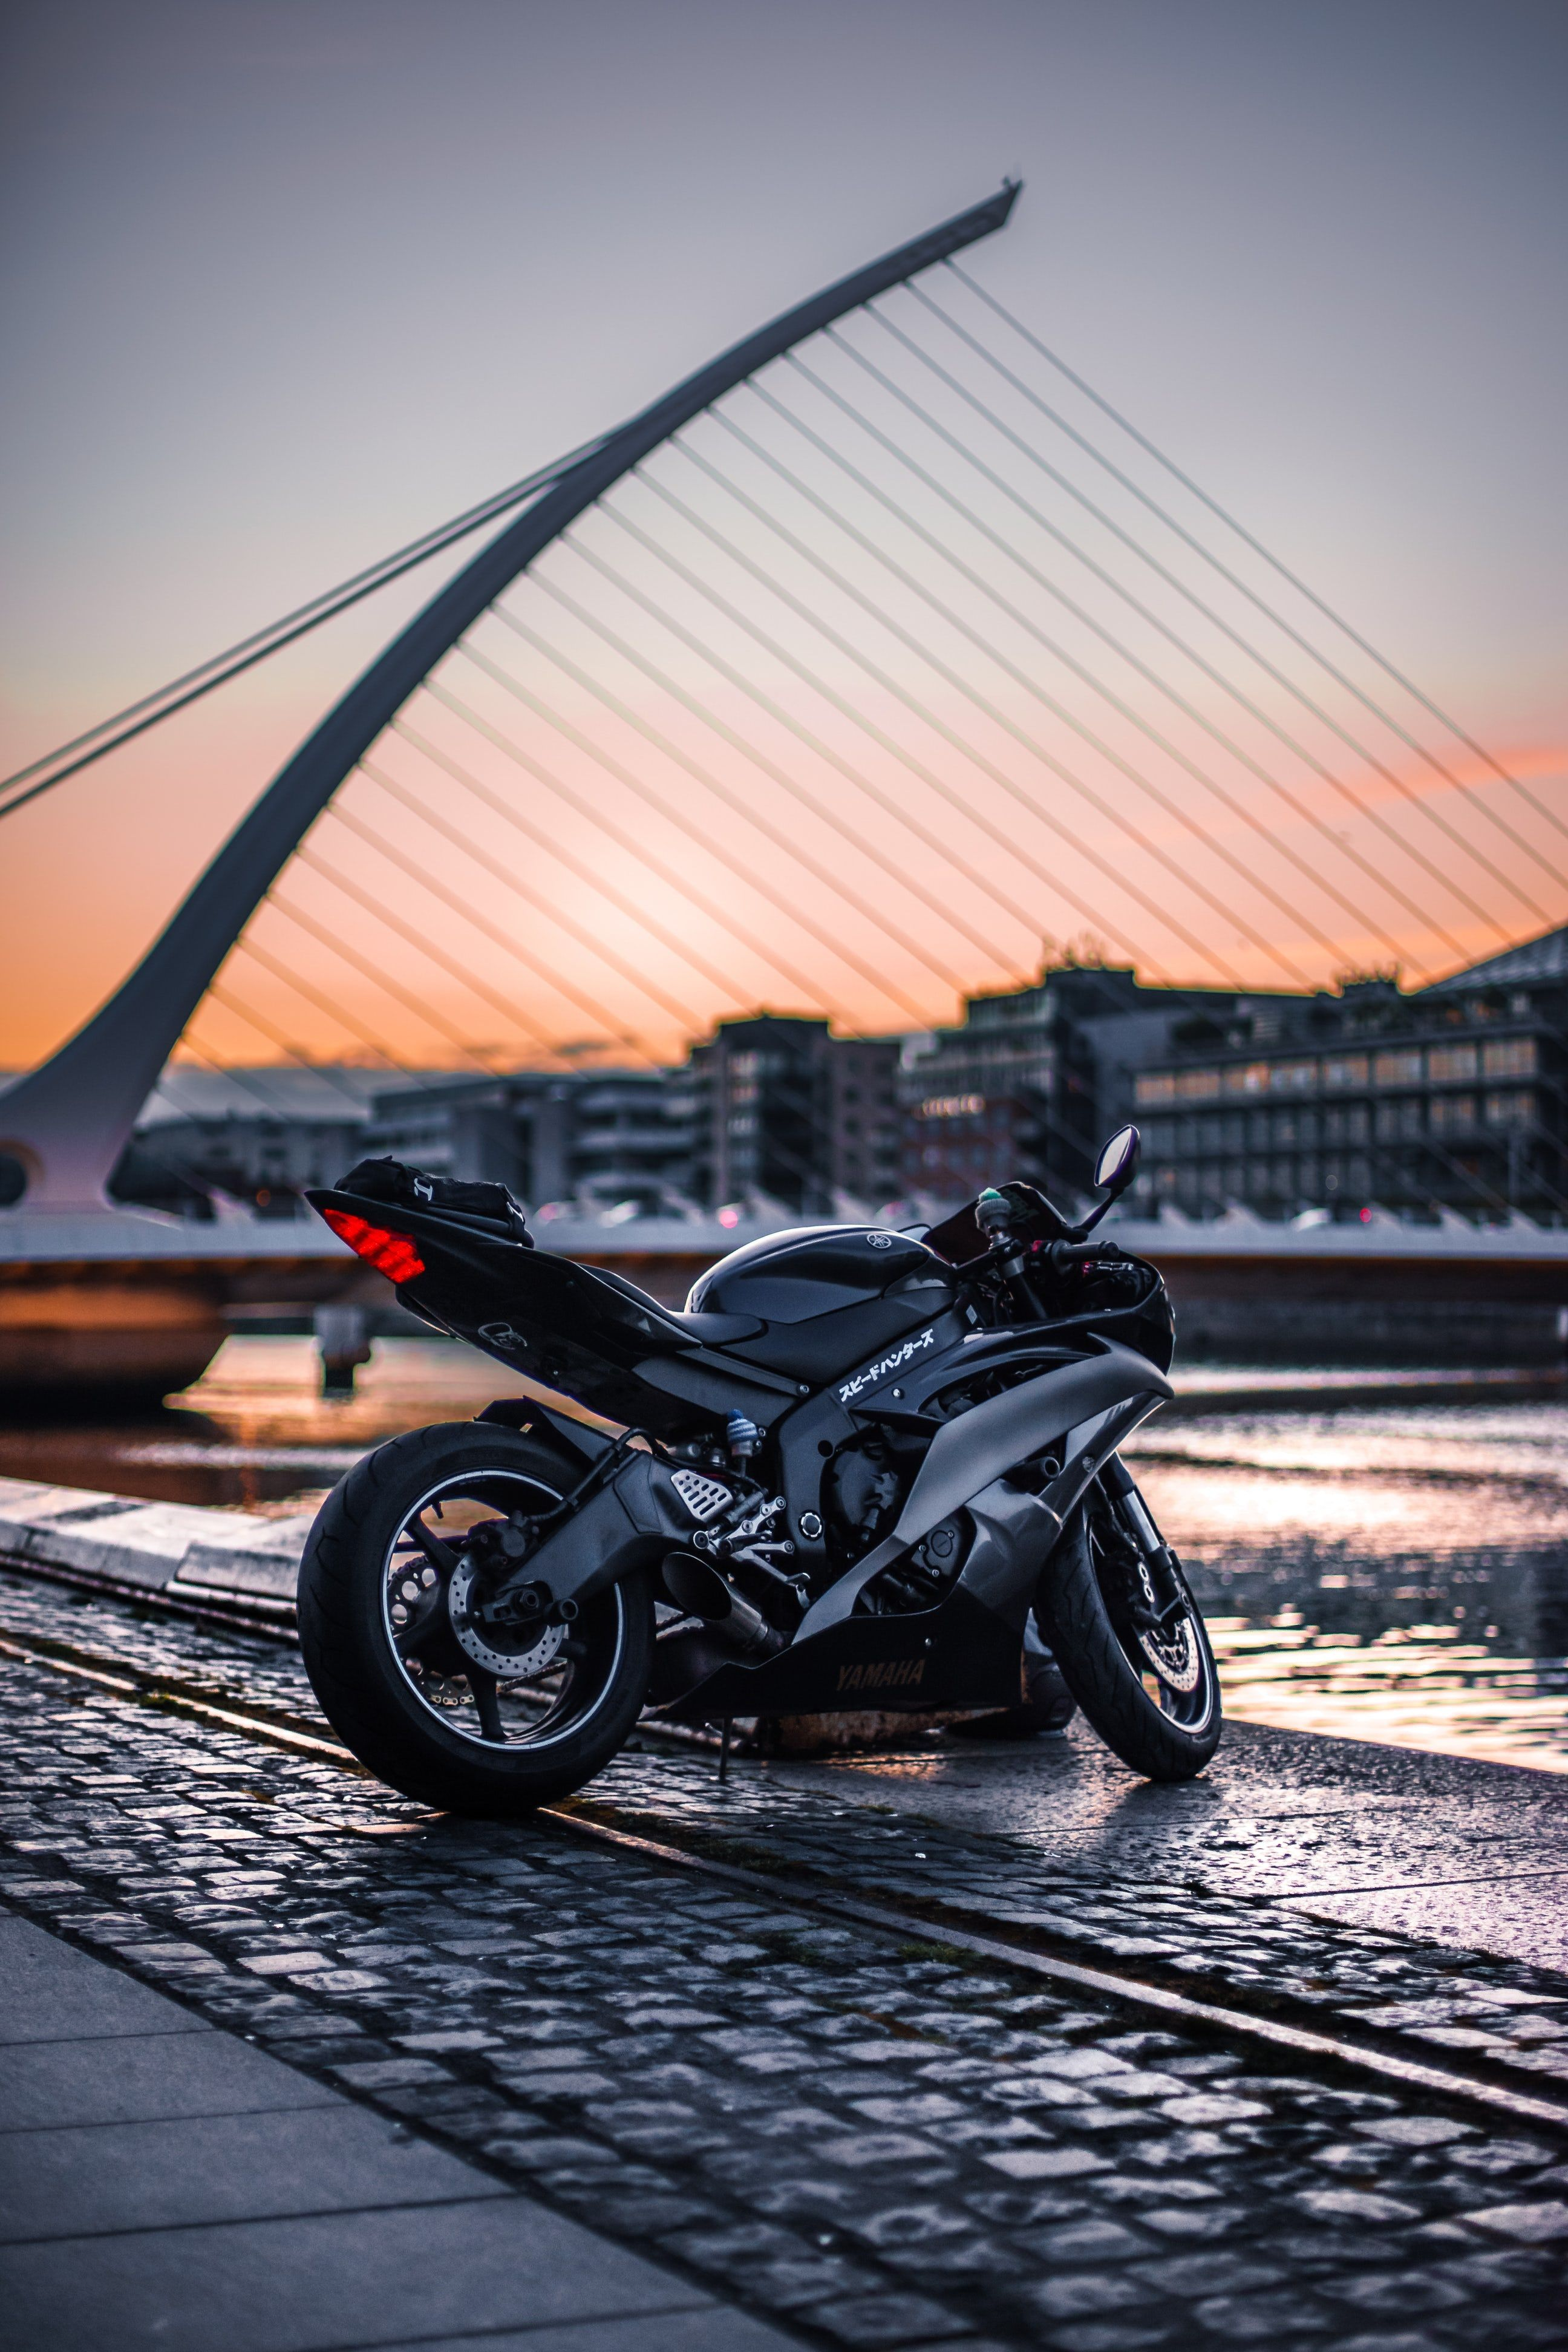 20 Best Free Motorcycle Pictures On Unsplash Motorcycle Wallpaper